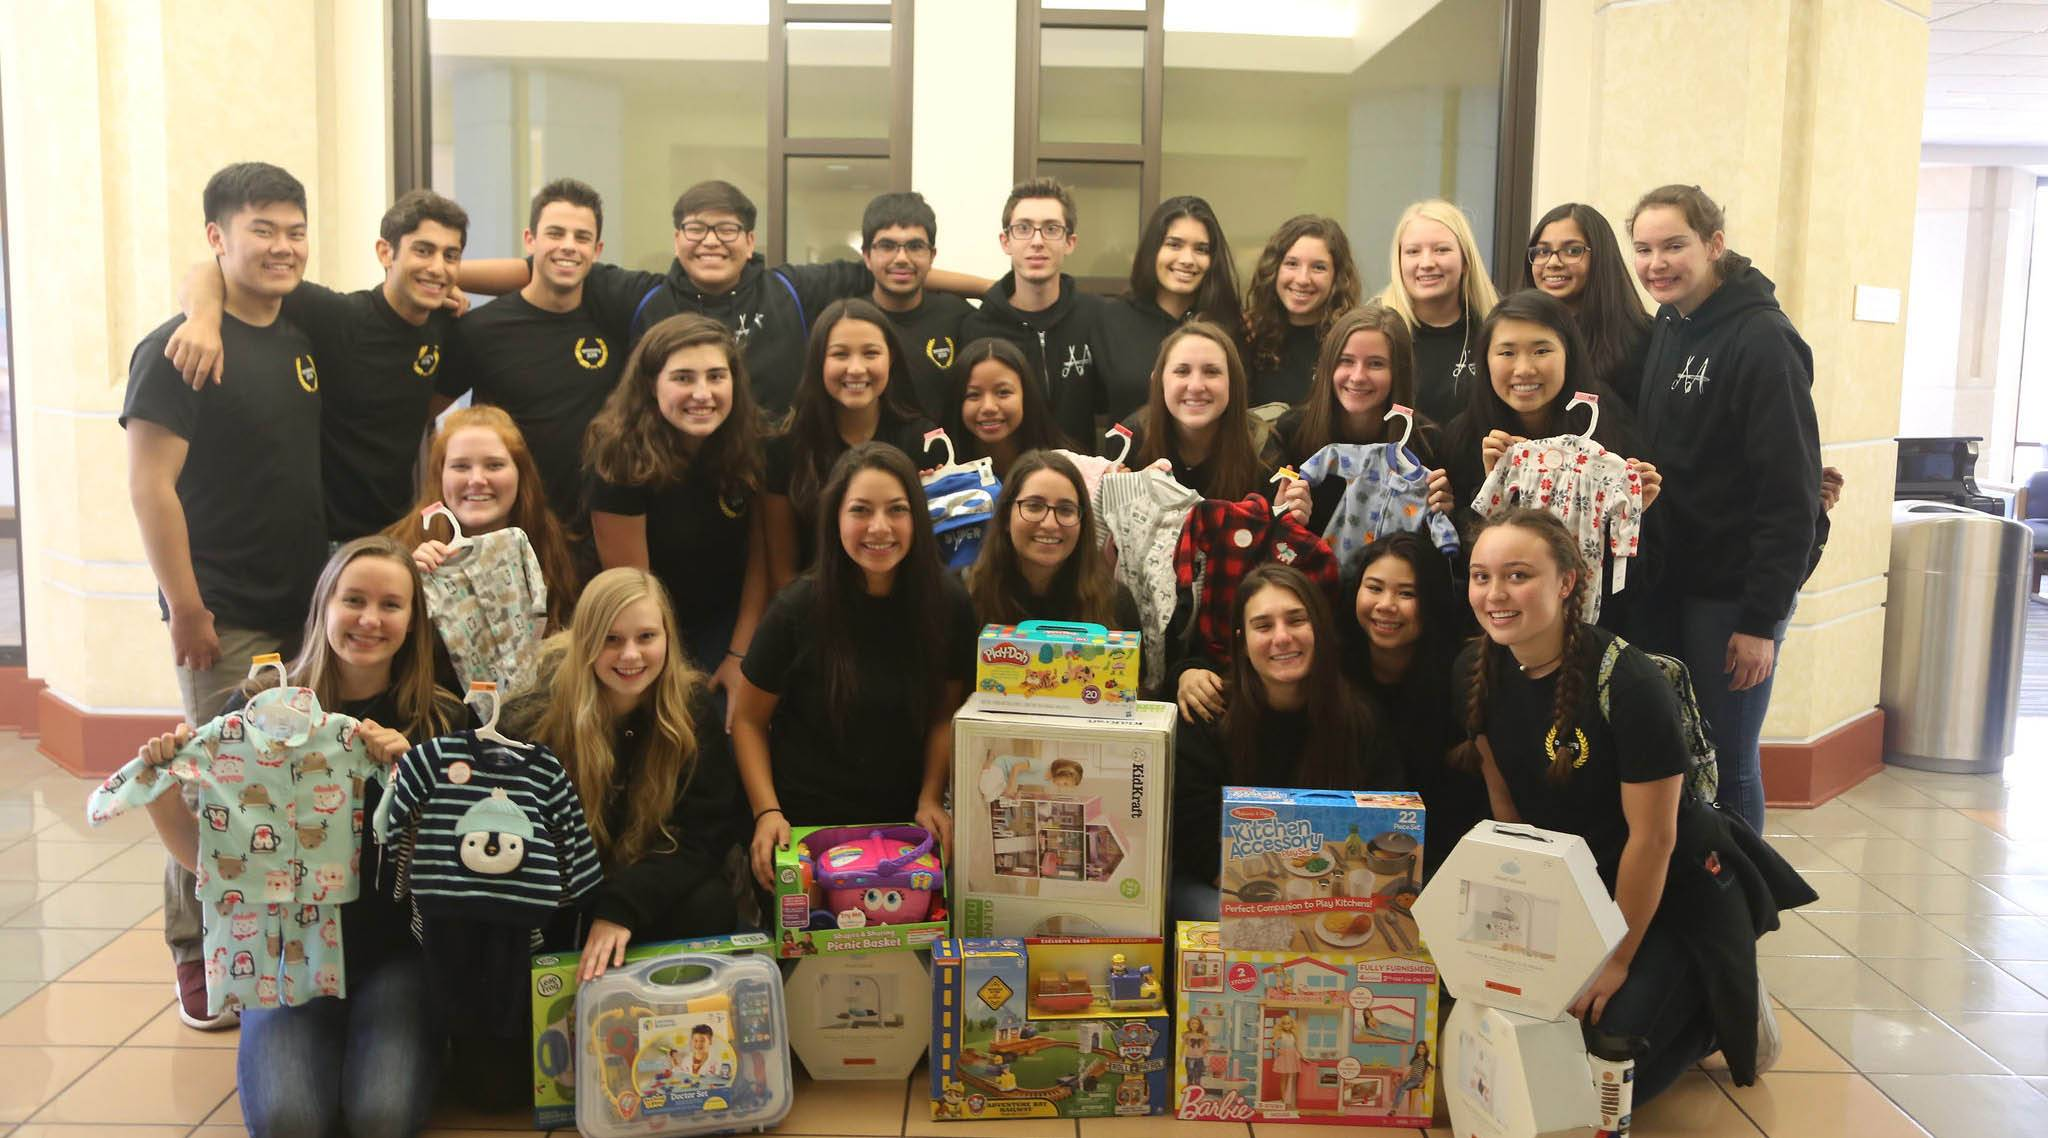 Students from Westlake High School Visit, donate gifts to Loma Linda ...